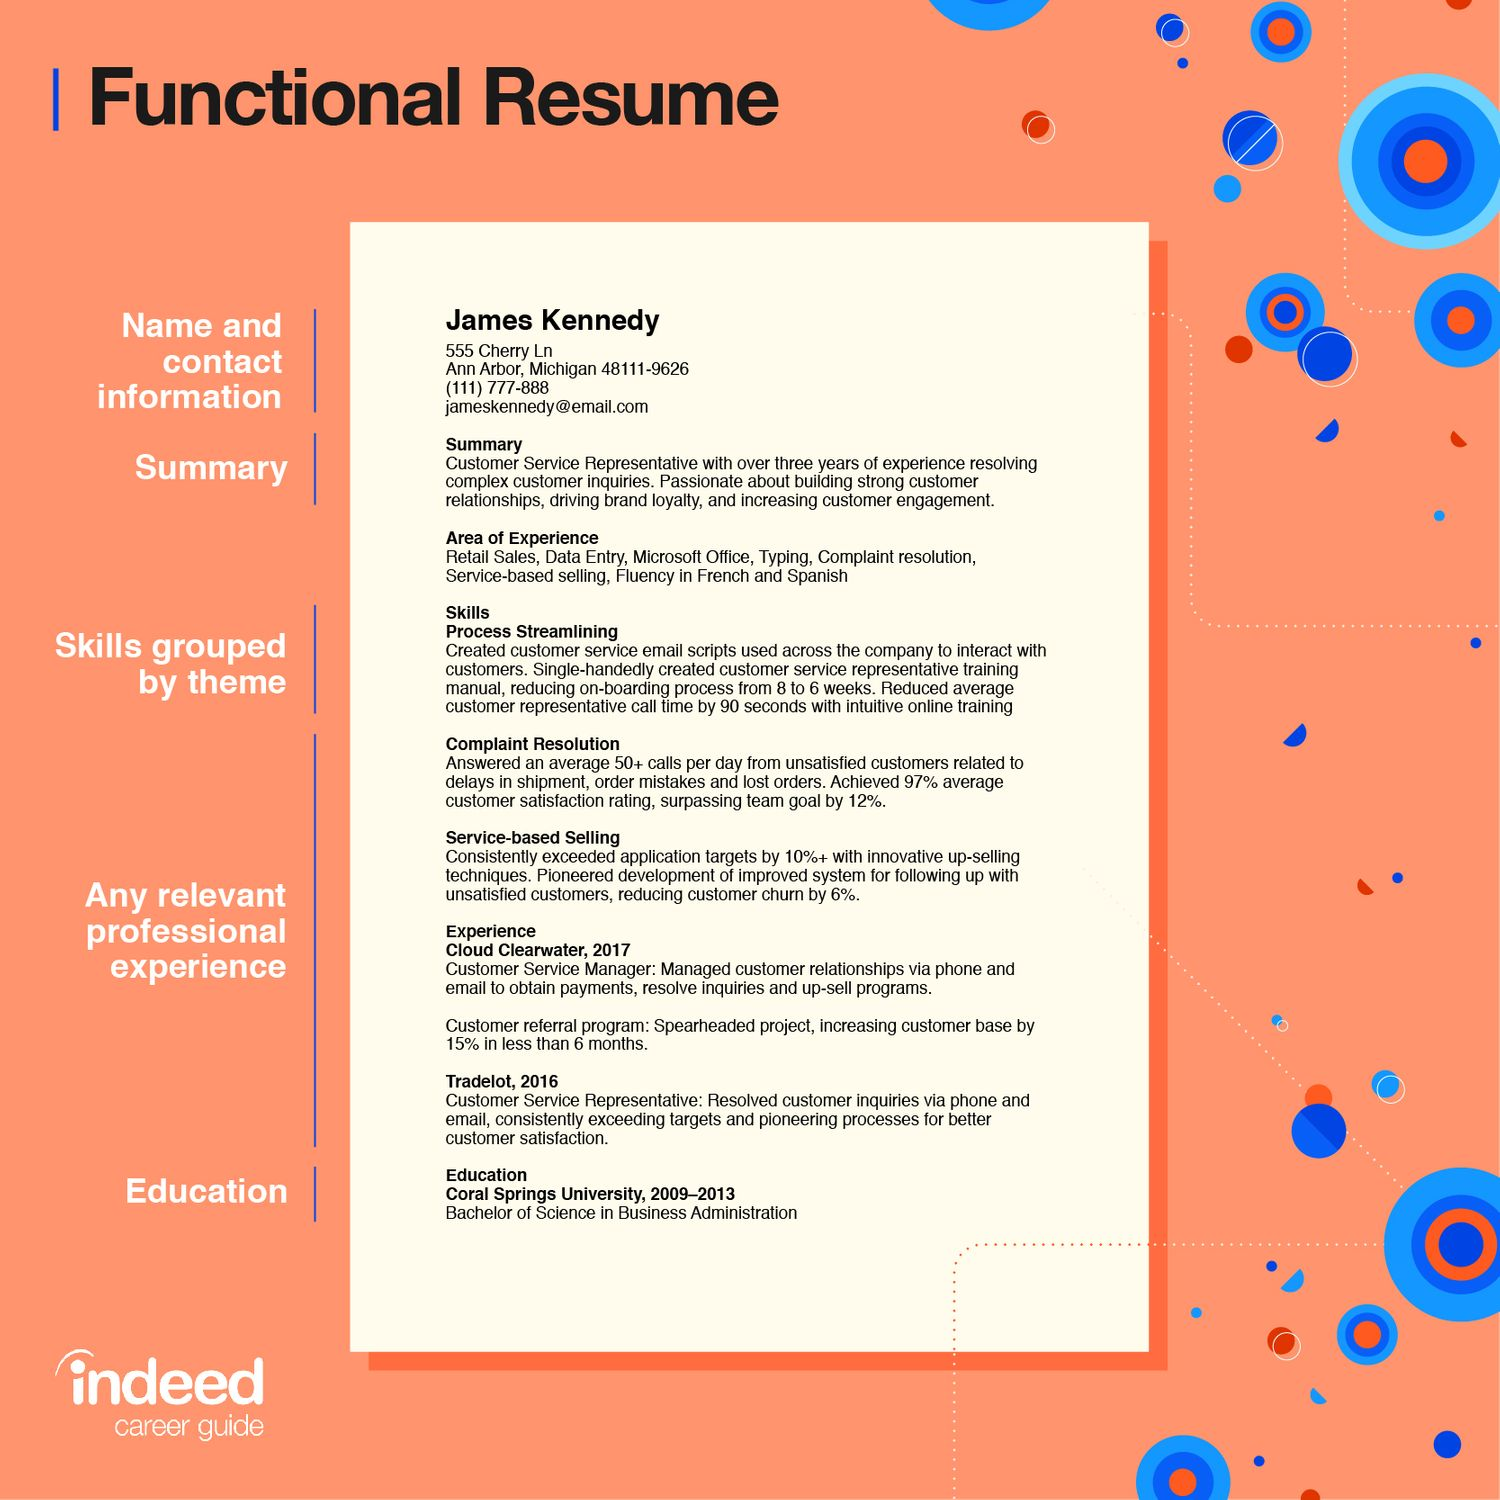 functional resume definition tips and examples indeed customer service resized mlt oracle Resume Customer Service Functional Resume